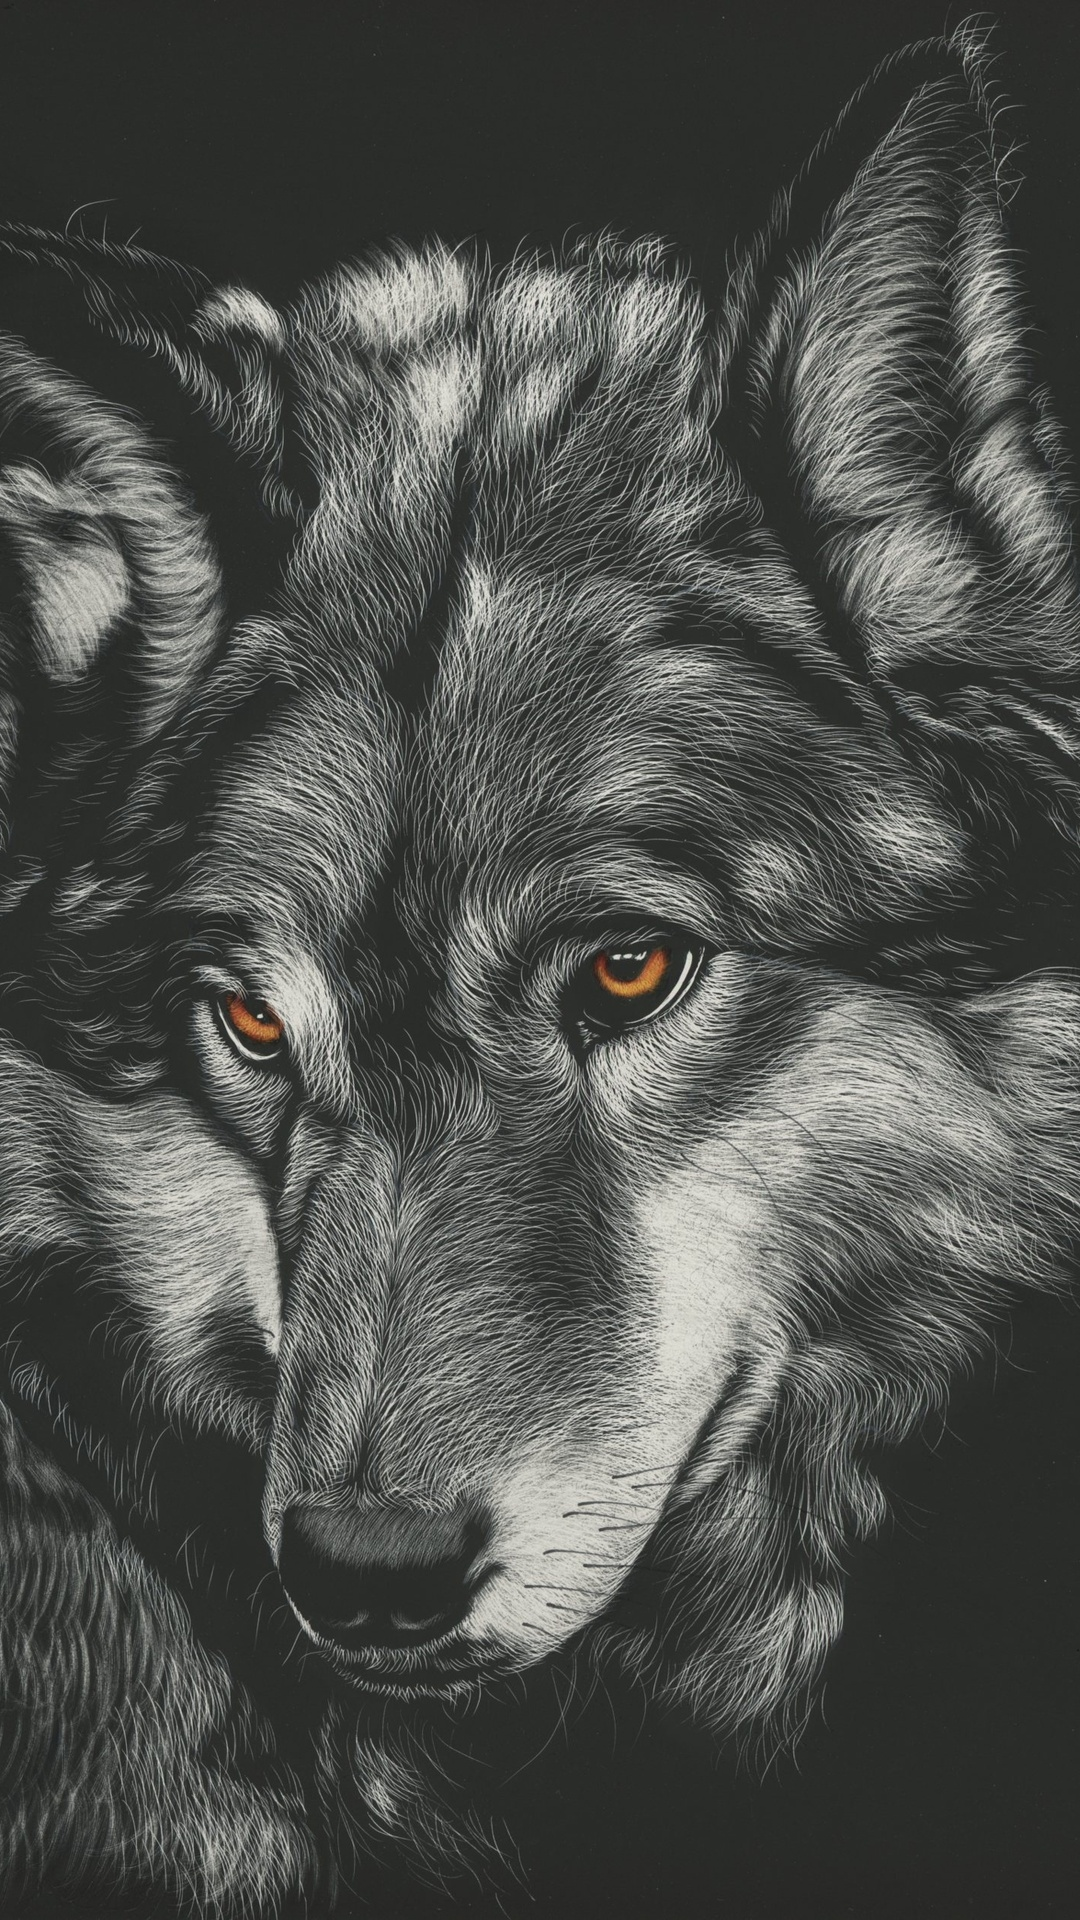 1080x1920 Wolf Painting 4k Iphone 7,6s,6 Plus, Pixel Xl